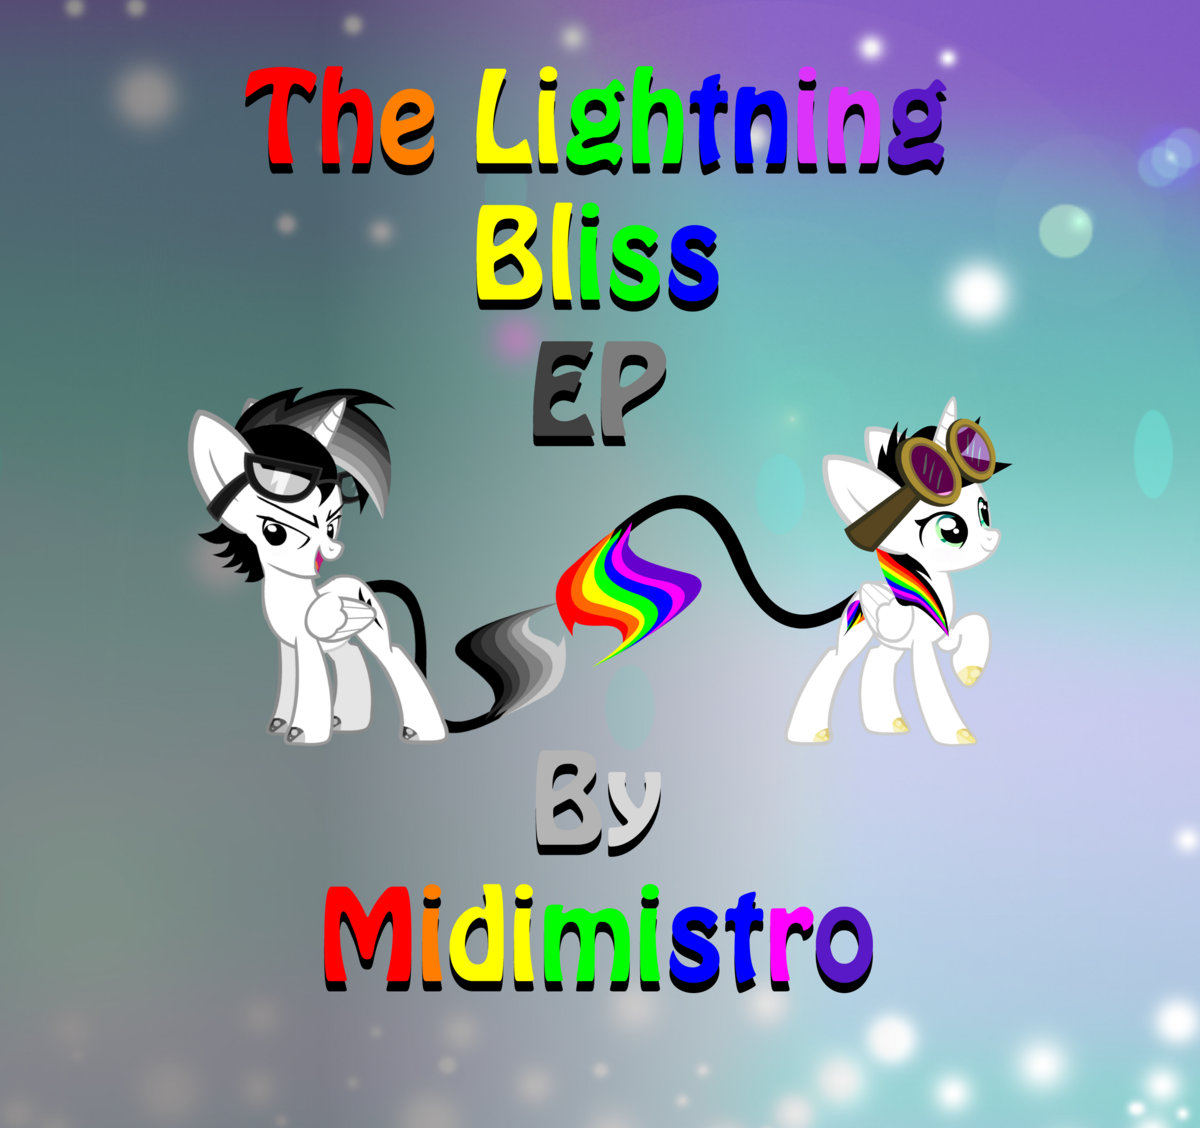 The Lightning Bliss Ep Midimistro Lightning bliss's channel thexvid.com/user/e1d2k thumbnail art by sapphire heartsong editing by mastercode vector work by lightning bliss and crownprince special thanks. the lightning bliss ep